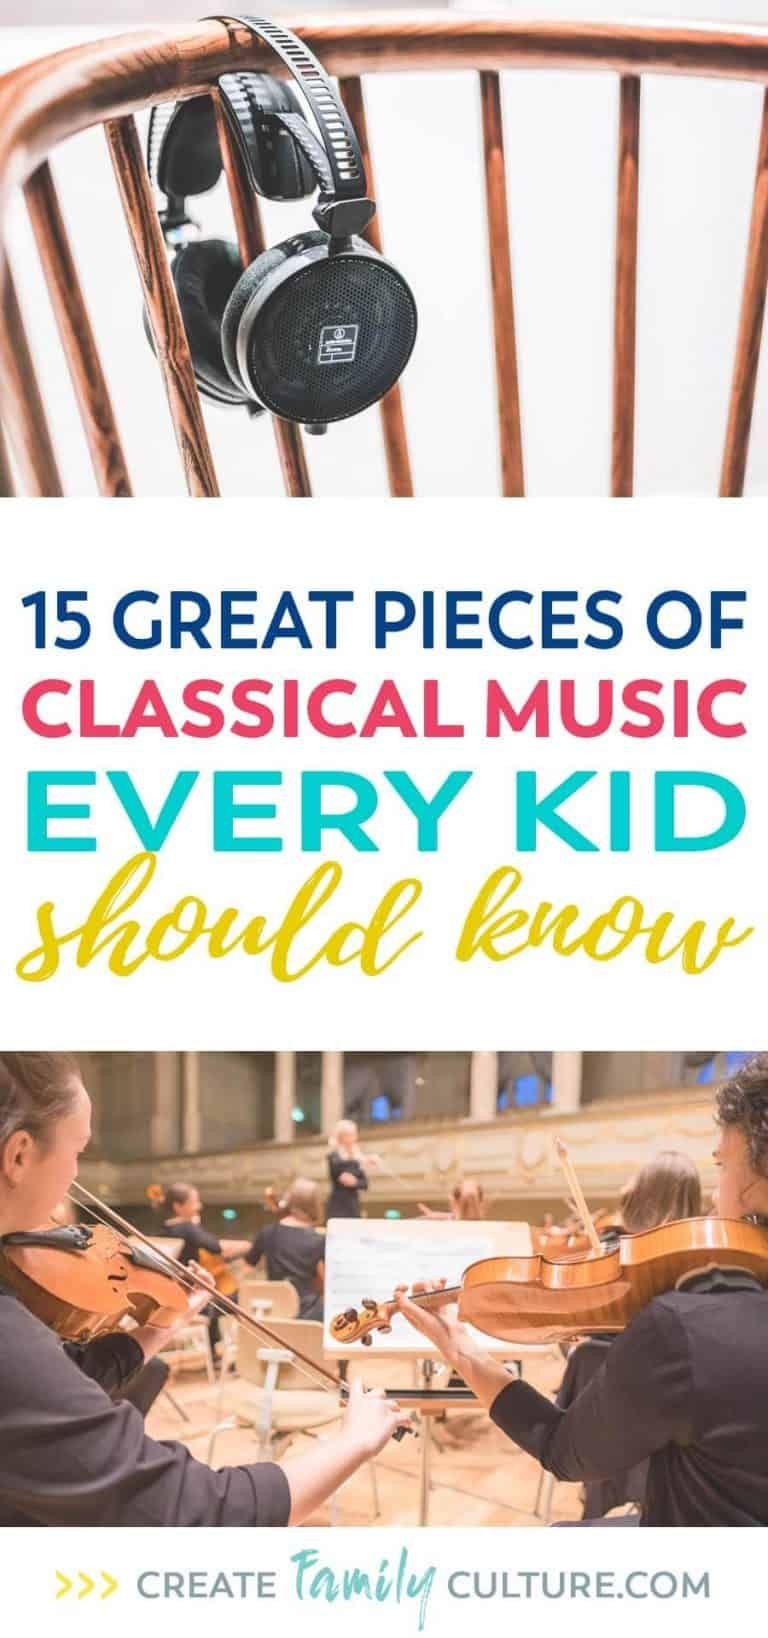 15 Pieces of the Best Classical Music Kids Should Know